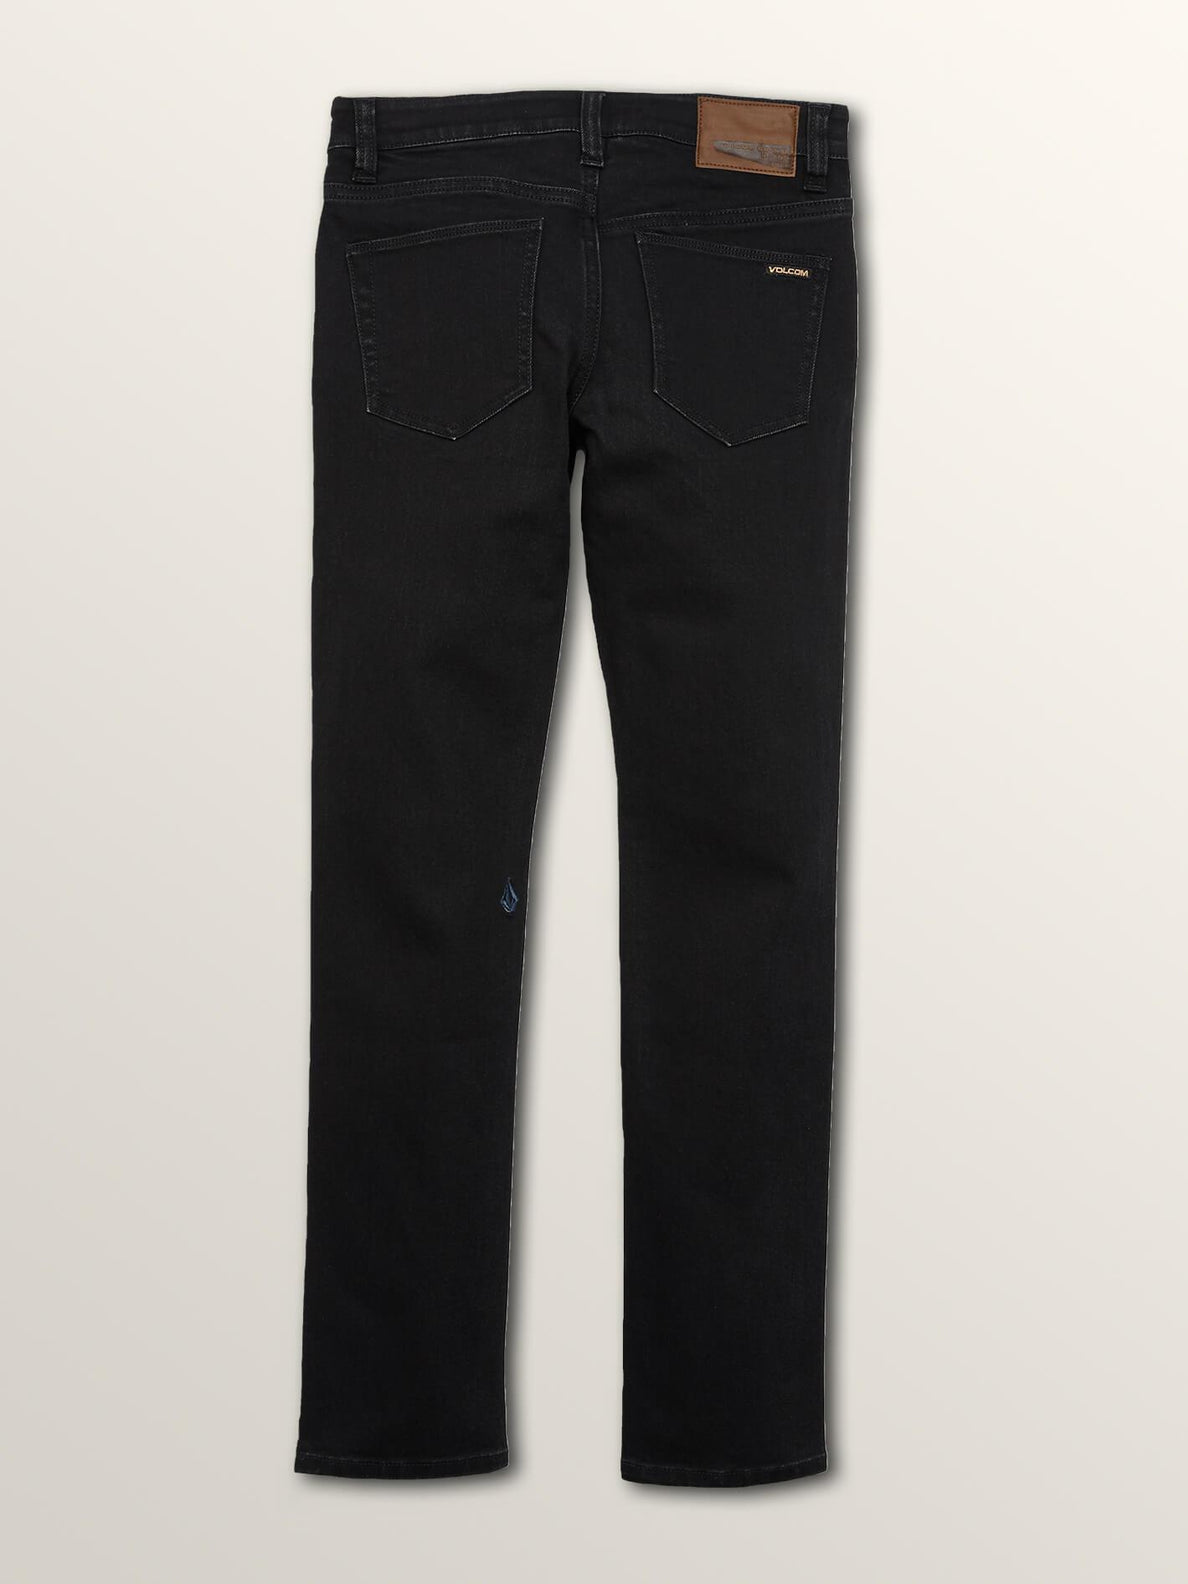 Big Boys Solver Modern Tapered Jeans In Blackout, Back View